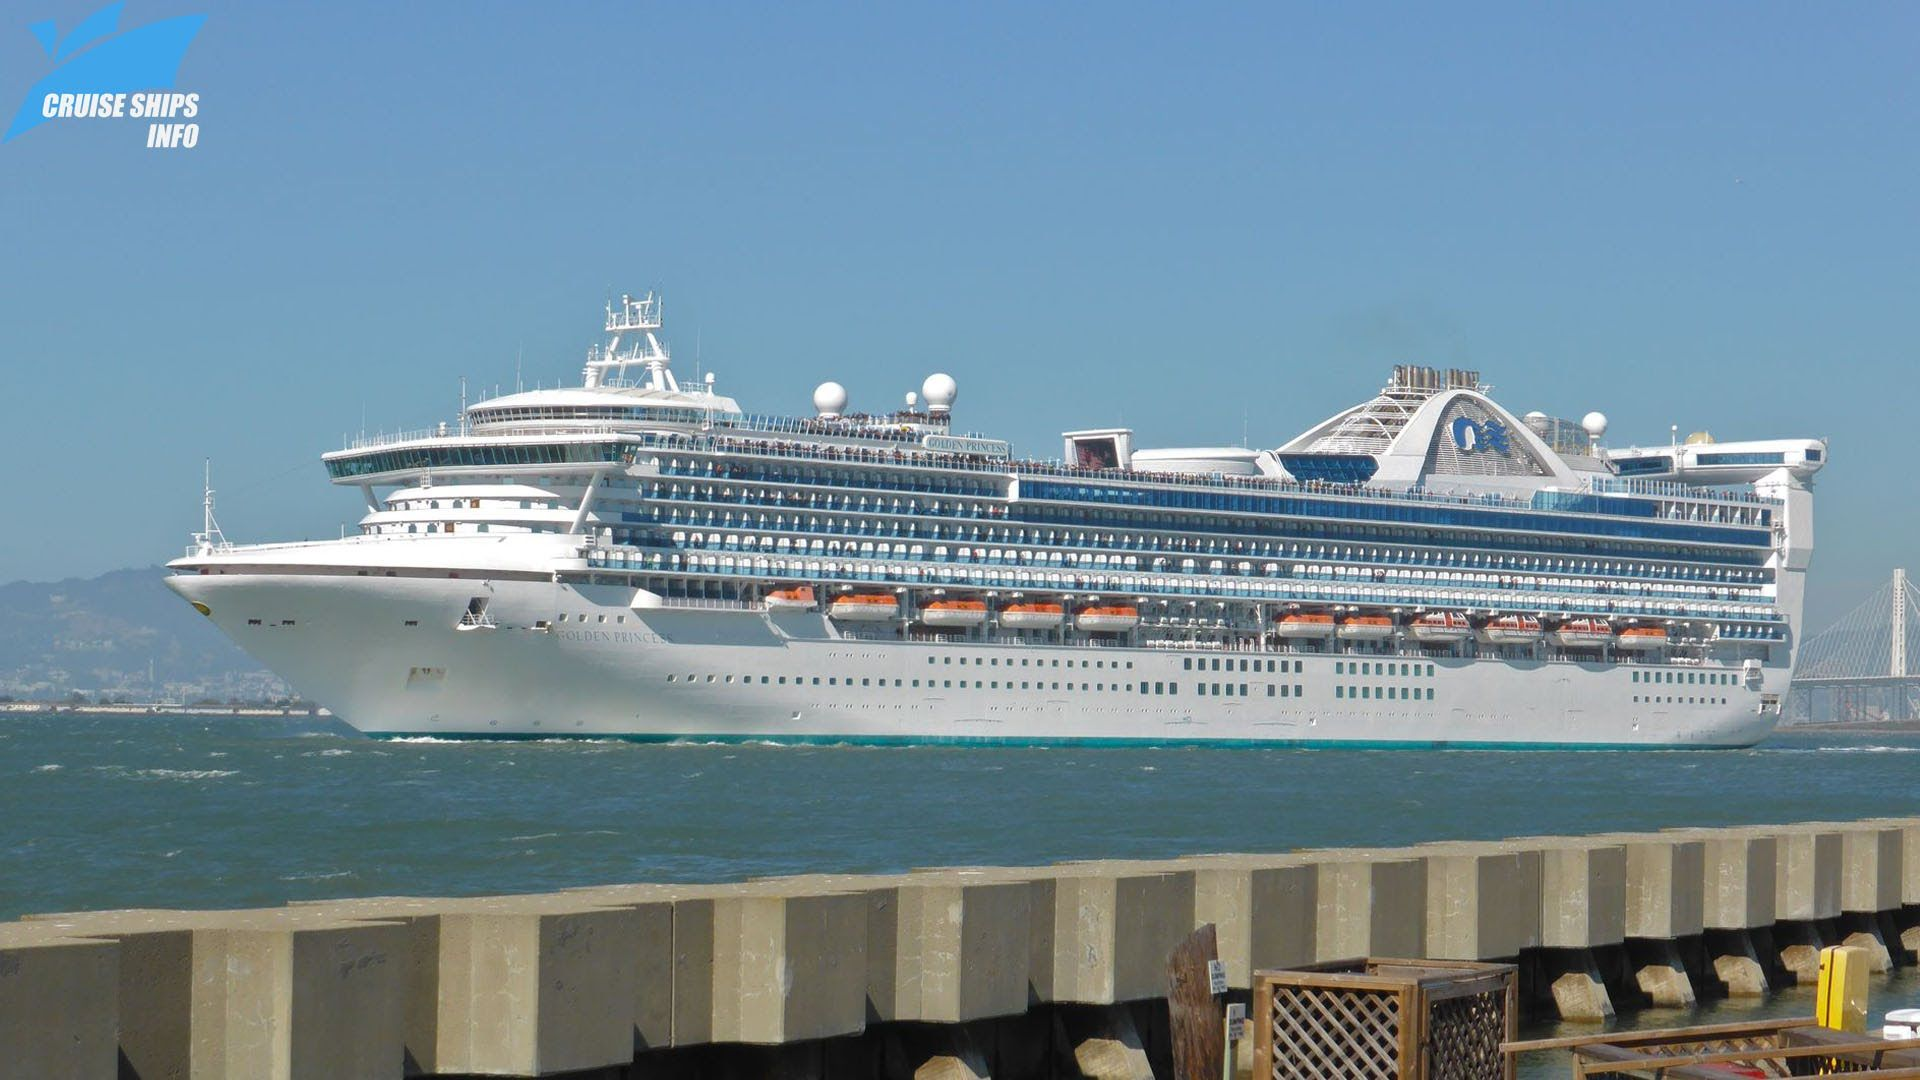 info on cruise ships